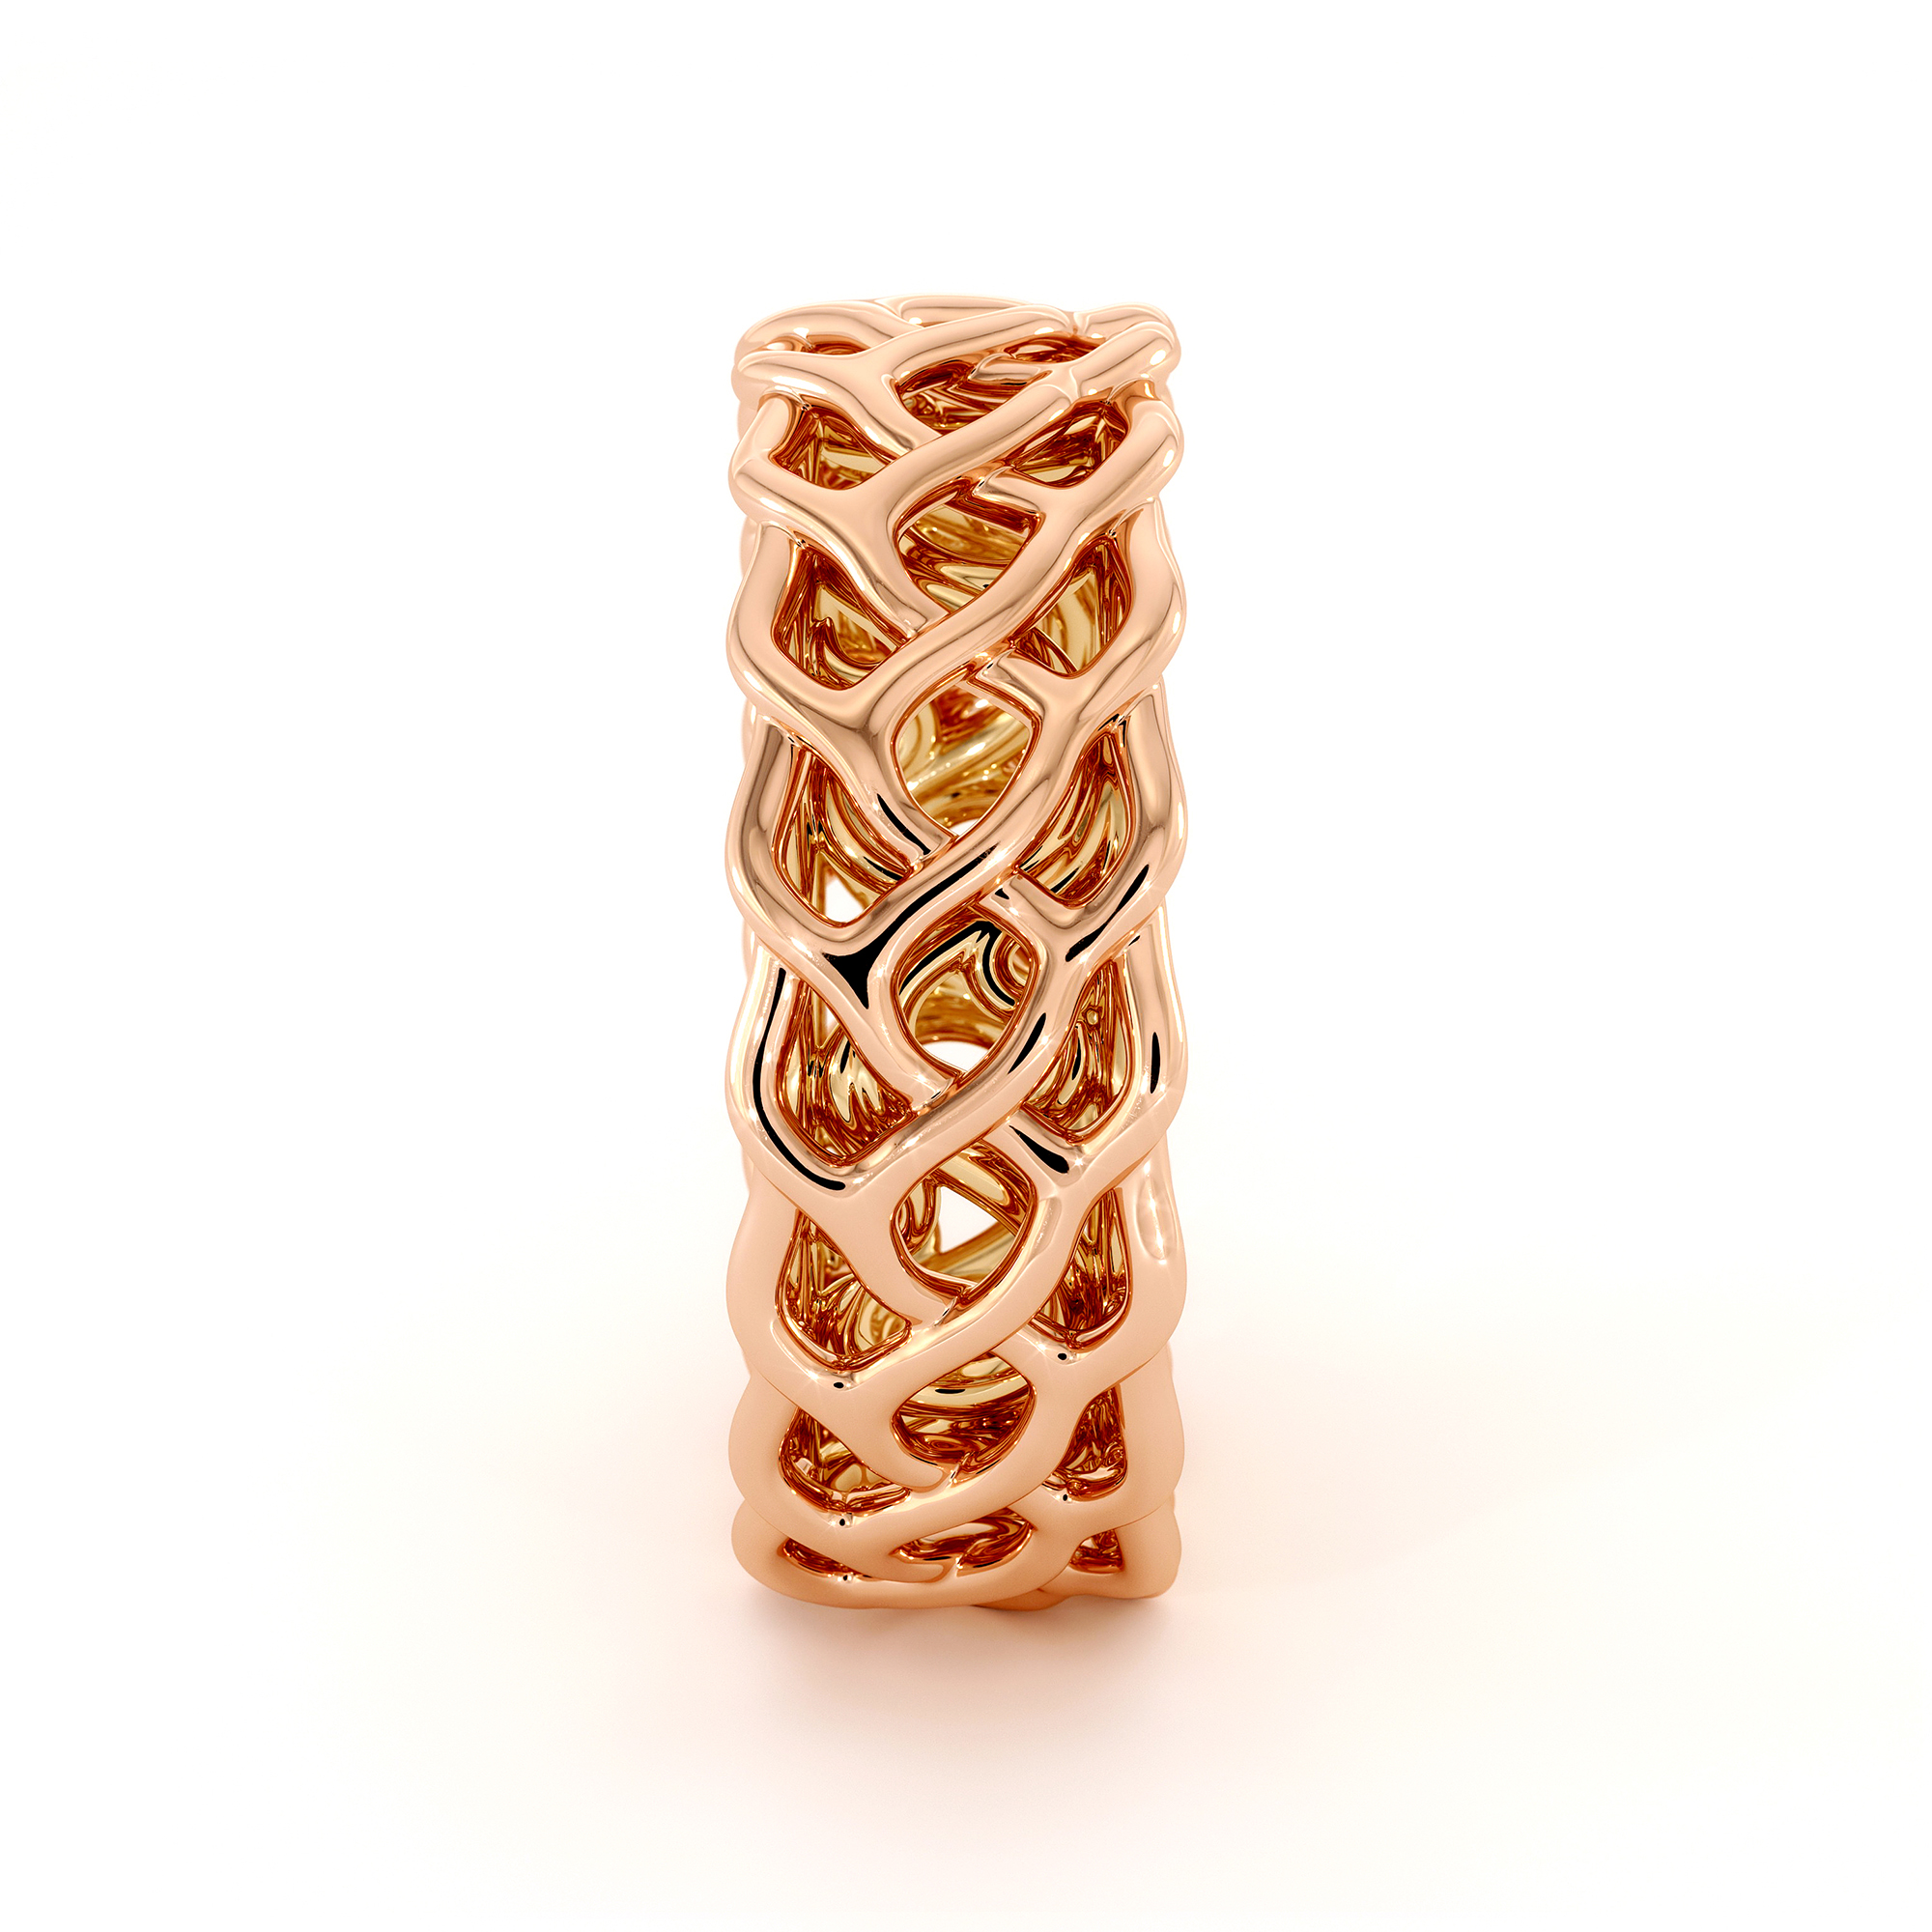 Two-Tone Unique Braided Men's Wedding Band 14K Rose Gold & Yellow Gold Ring